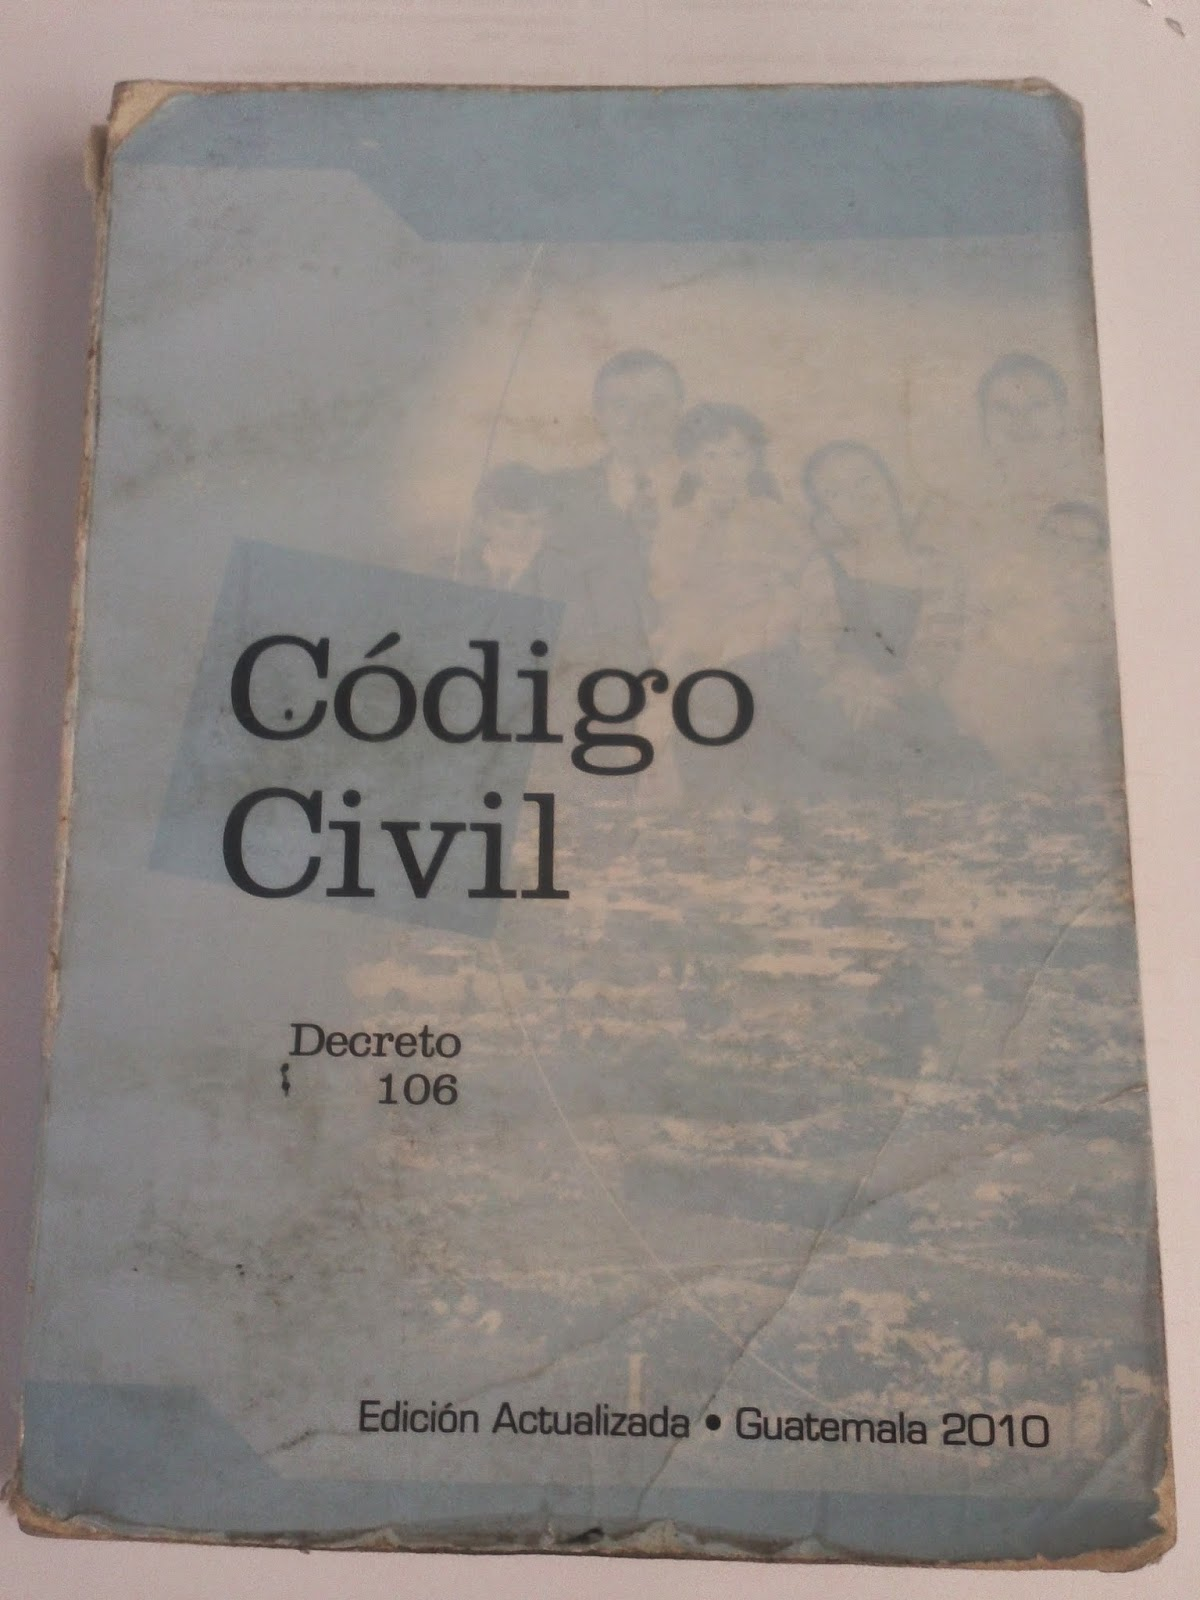 C digo Civil (documento)